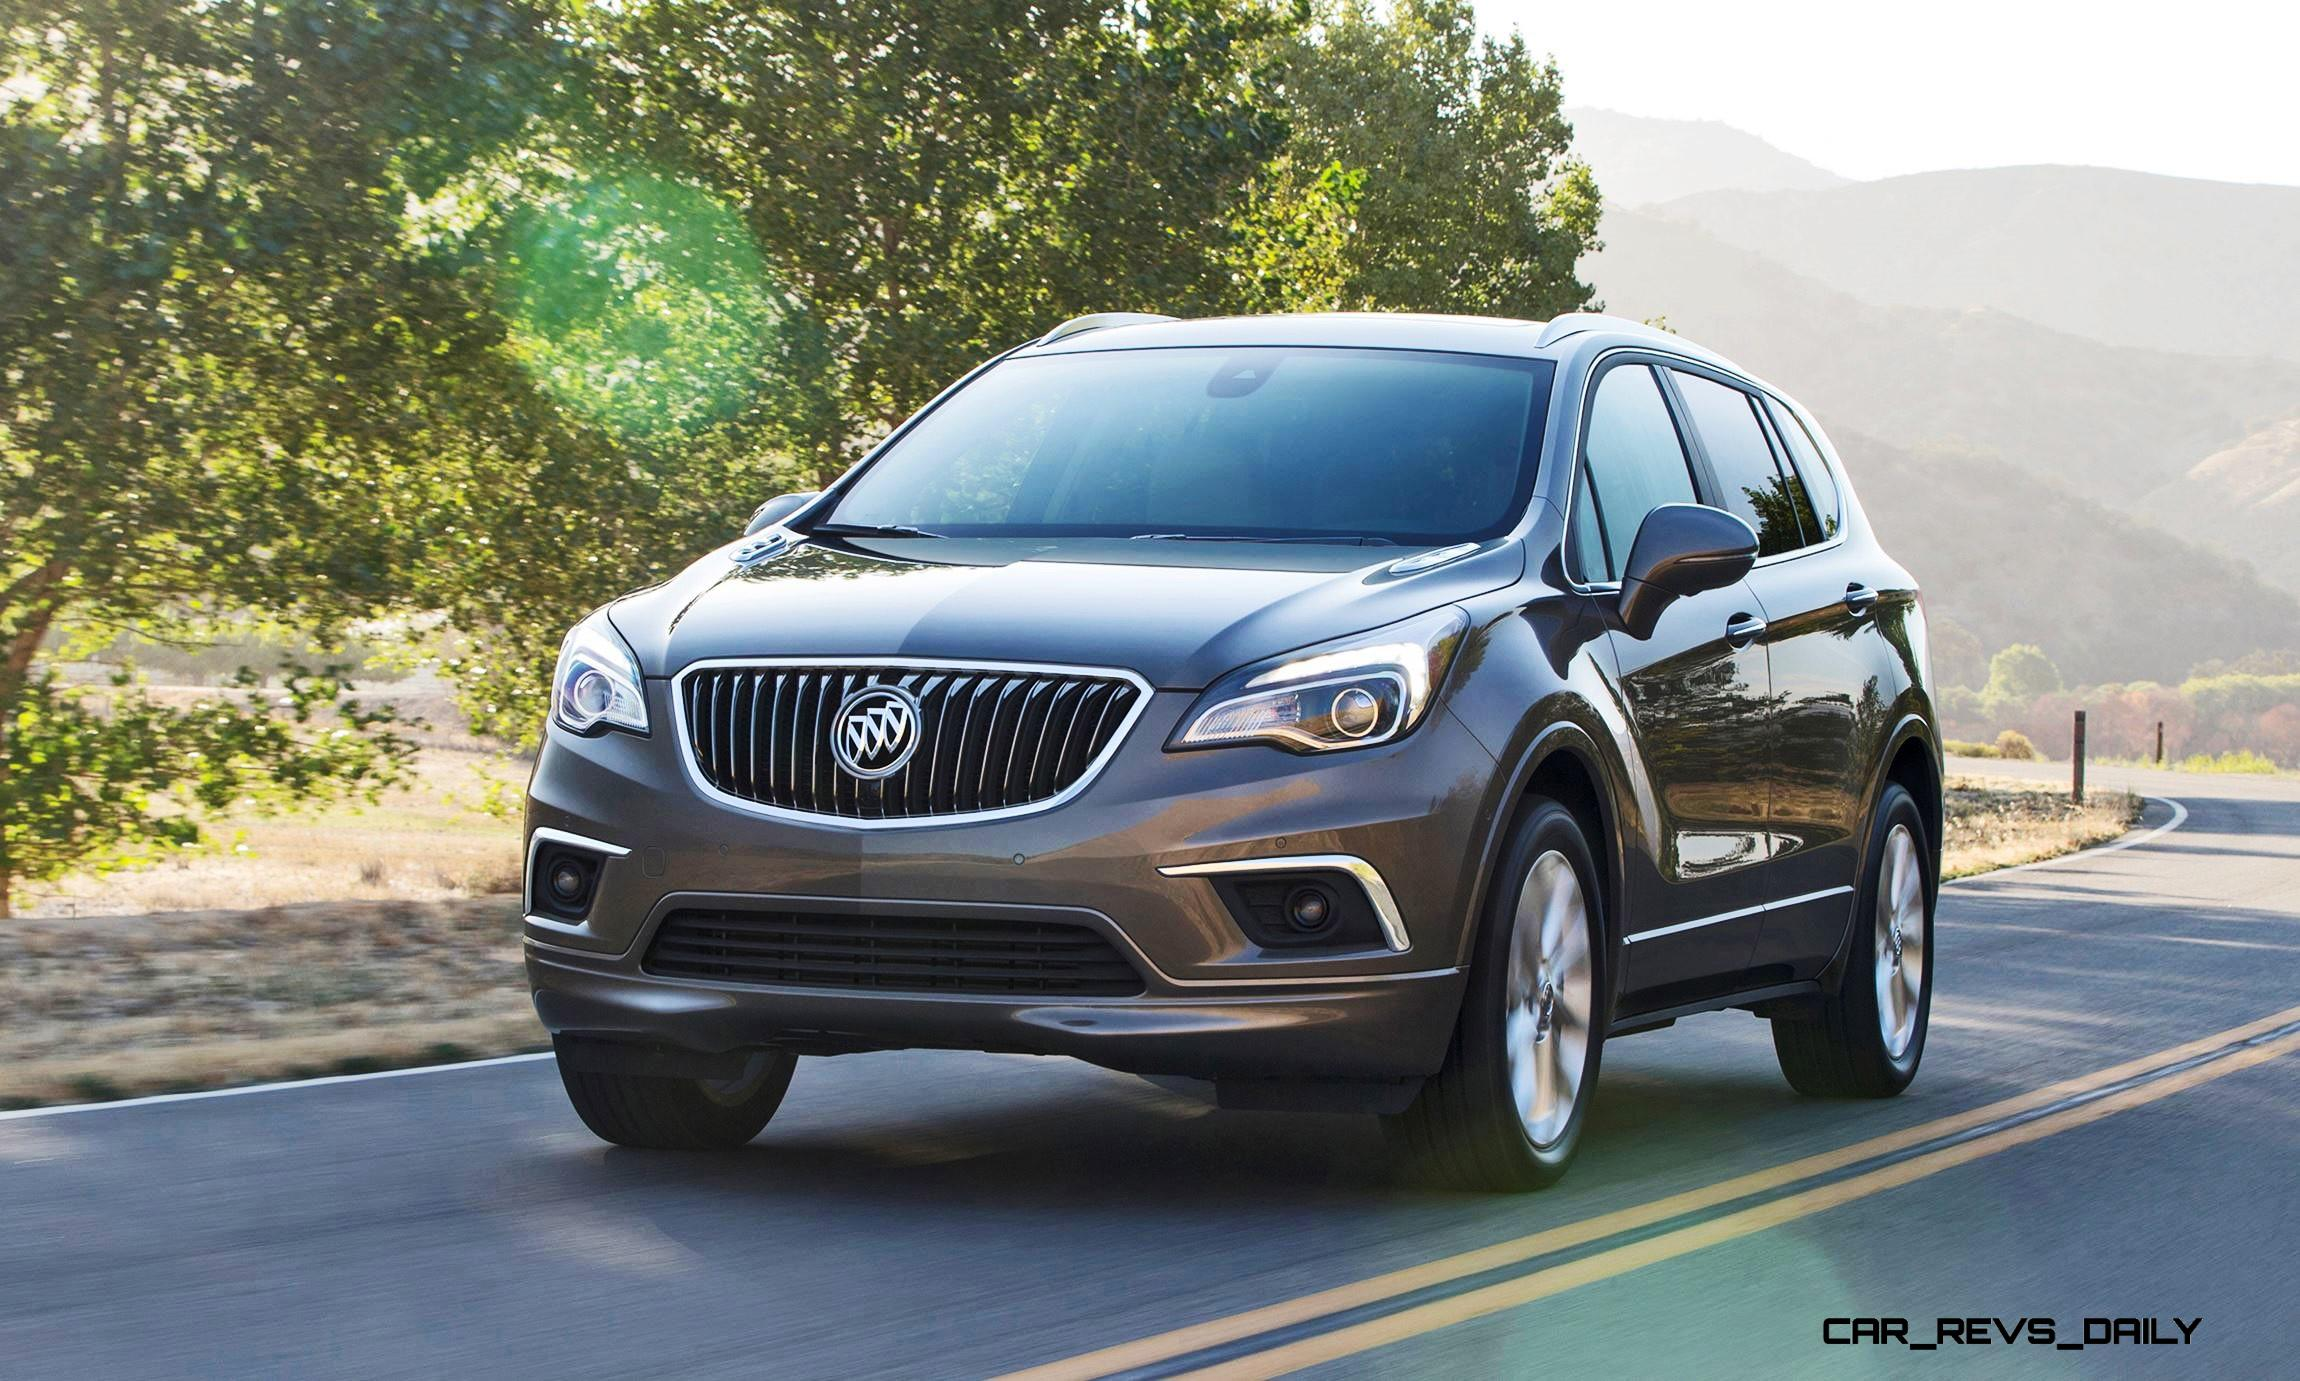 2016 buick envision is new 5 seat crossover standard turbo to rival audi q5 arrives in april. Black Bedroom Furniture Sets. Home Design Ideas